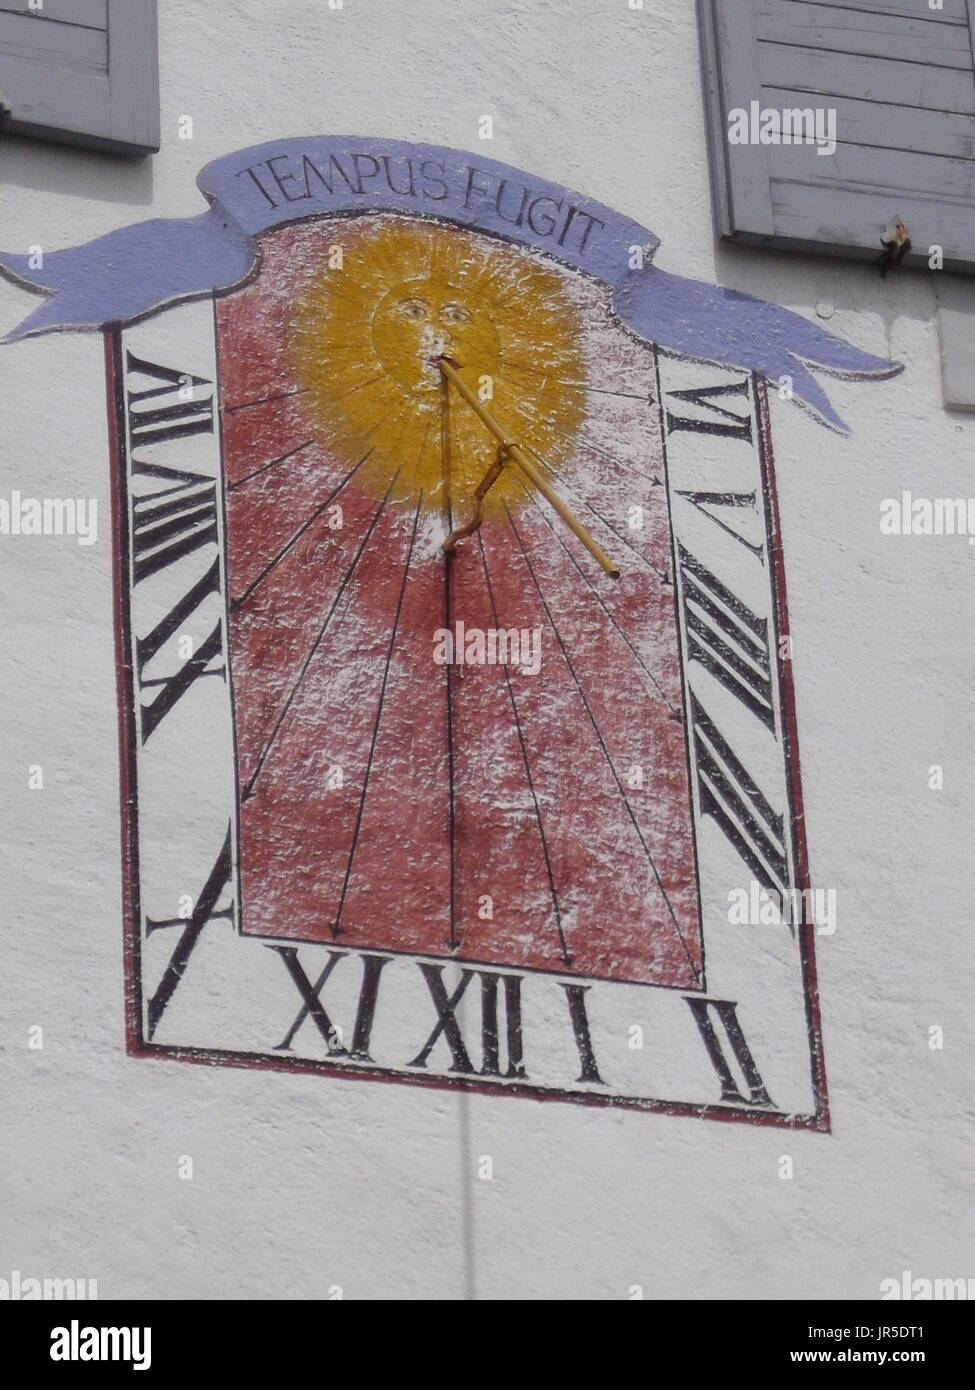 Sundial on a house in Bavaria - Stock Image